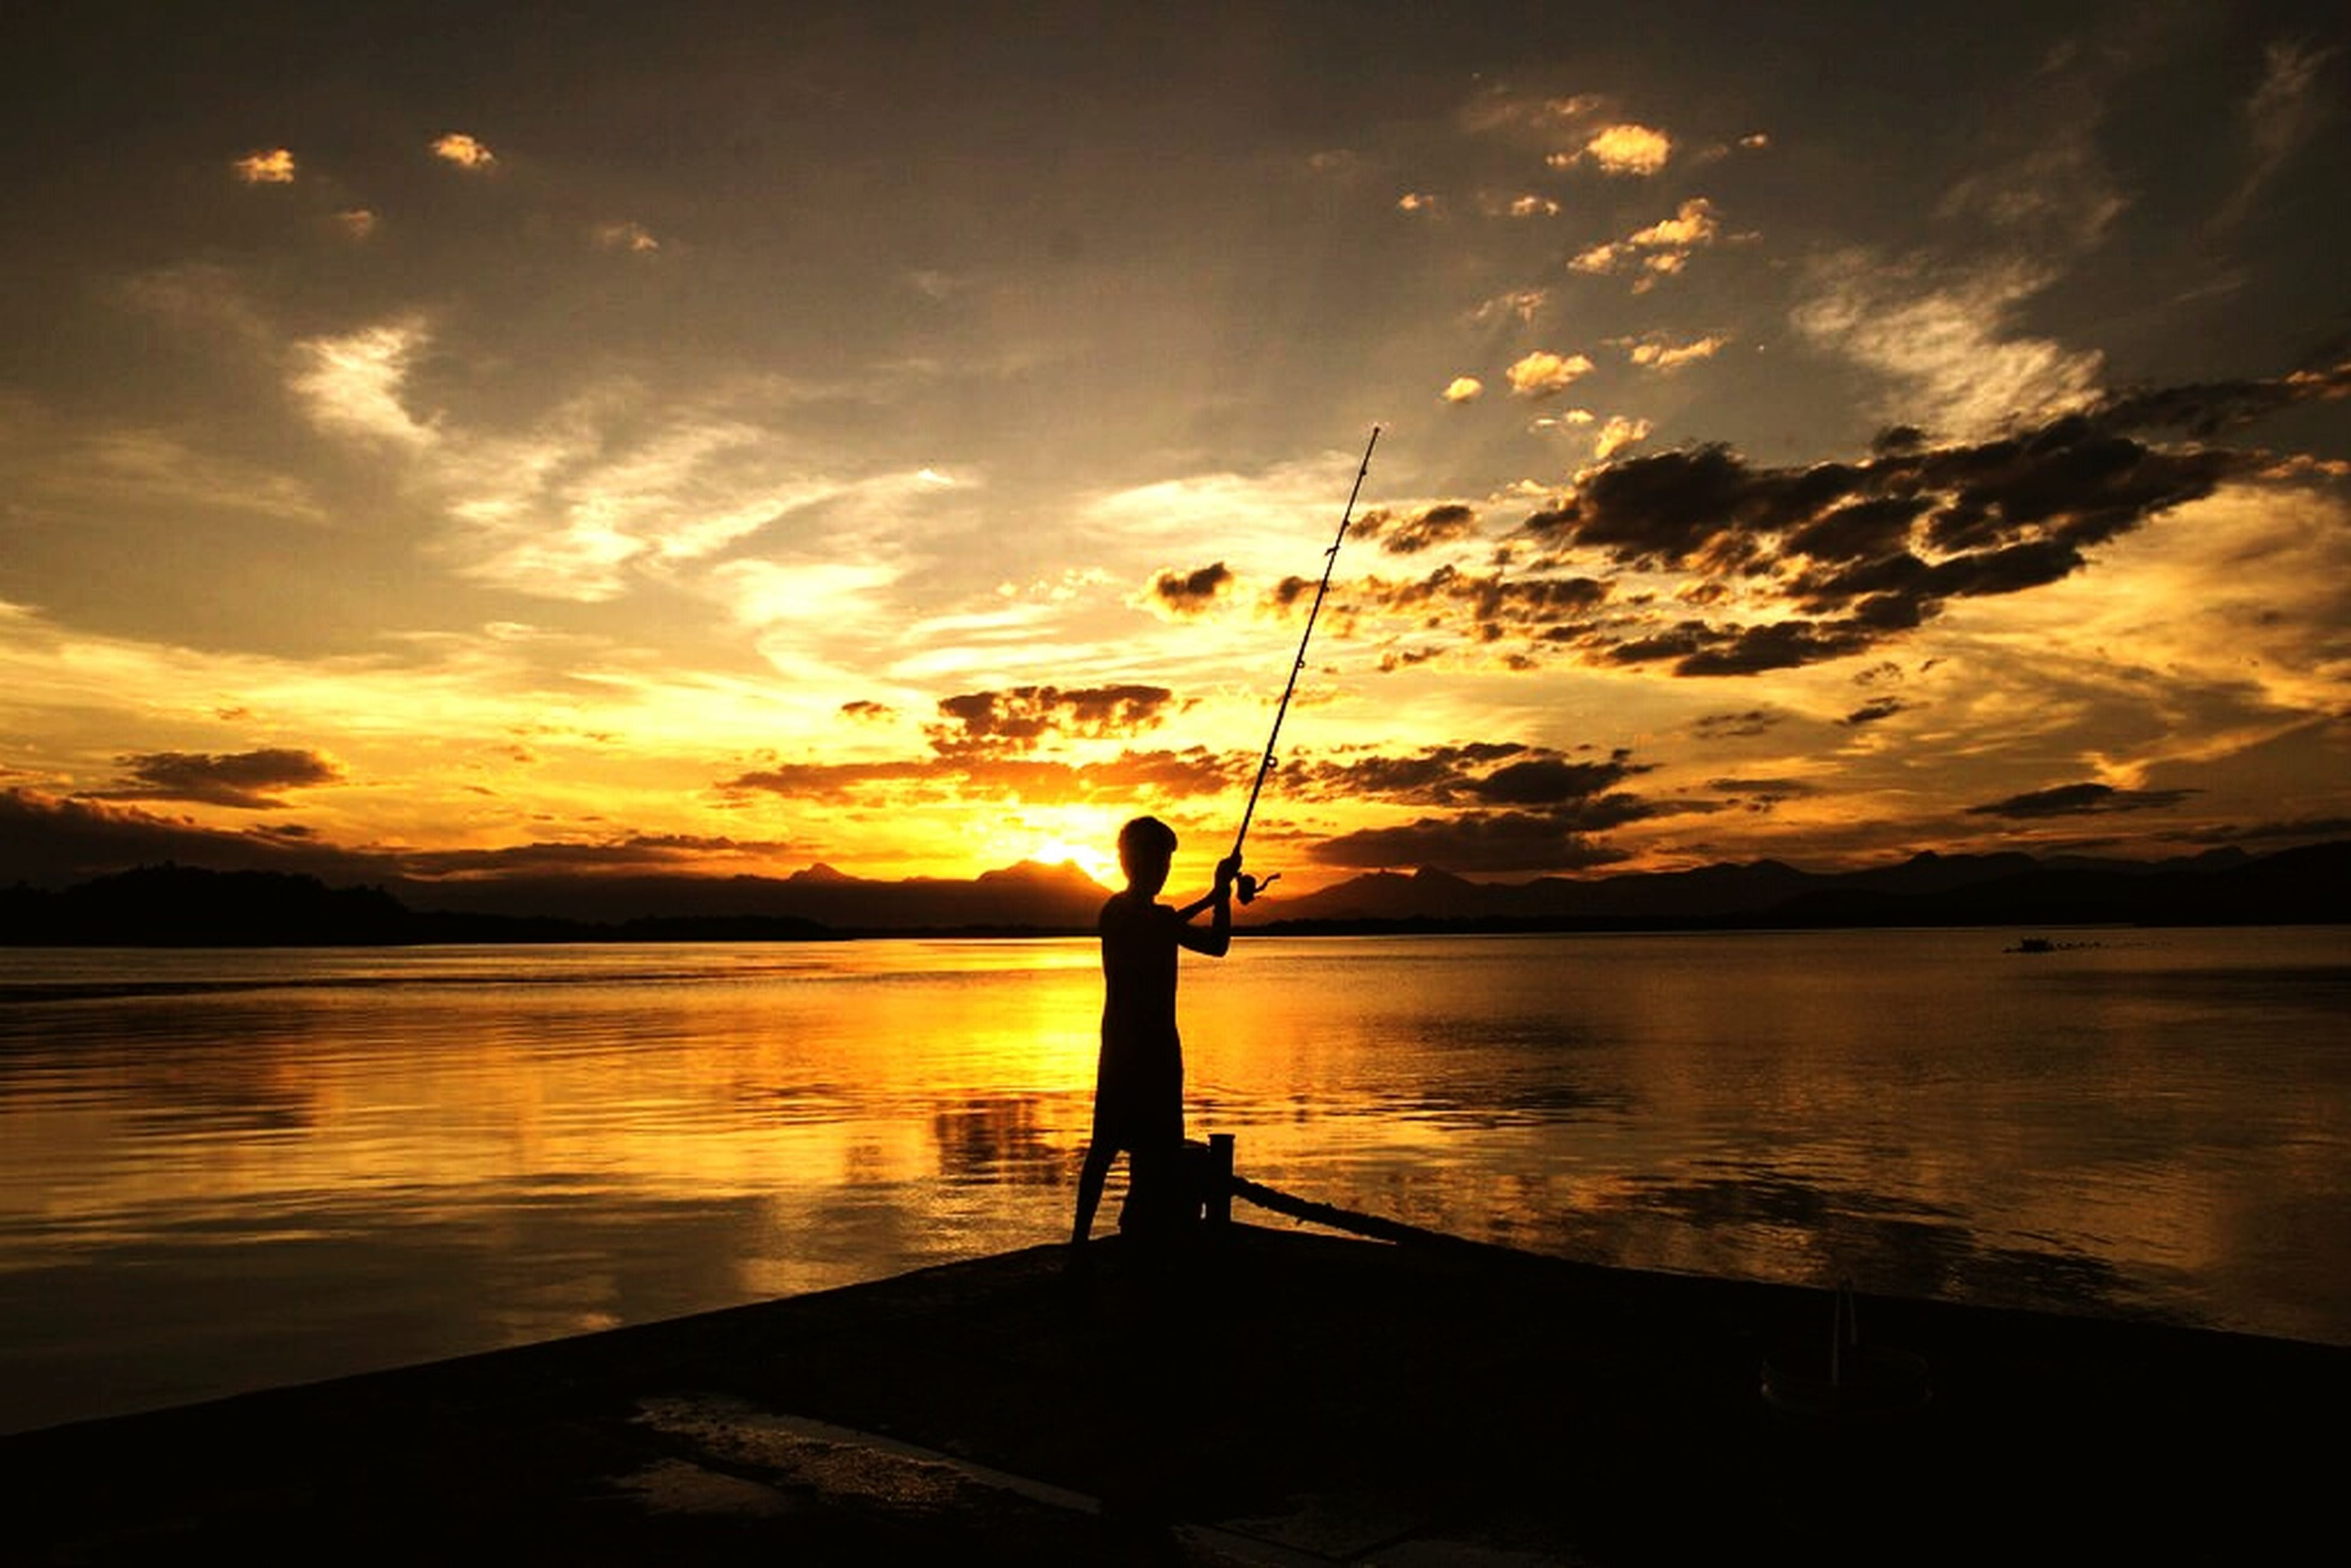 water, sunset, silhouette, sky, sea, lifestyles, leisure activity, scenics, tranquil scene, tranquility, beauty in nature, cloud - sky, reflection, horizon over water, men, full length, nature, standing